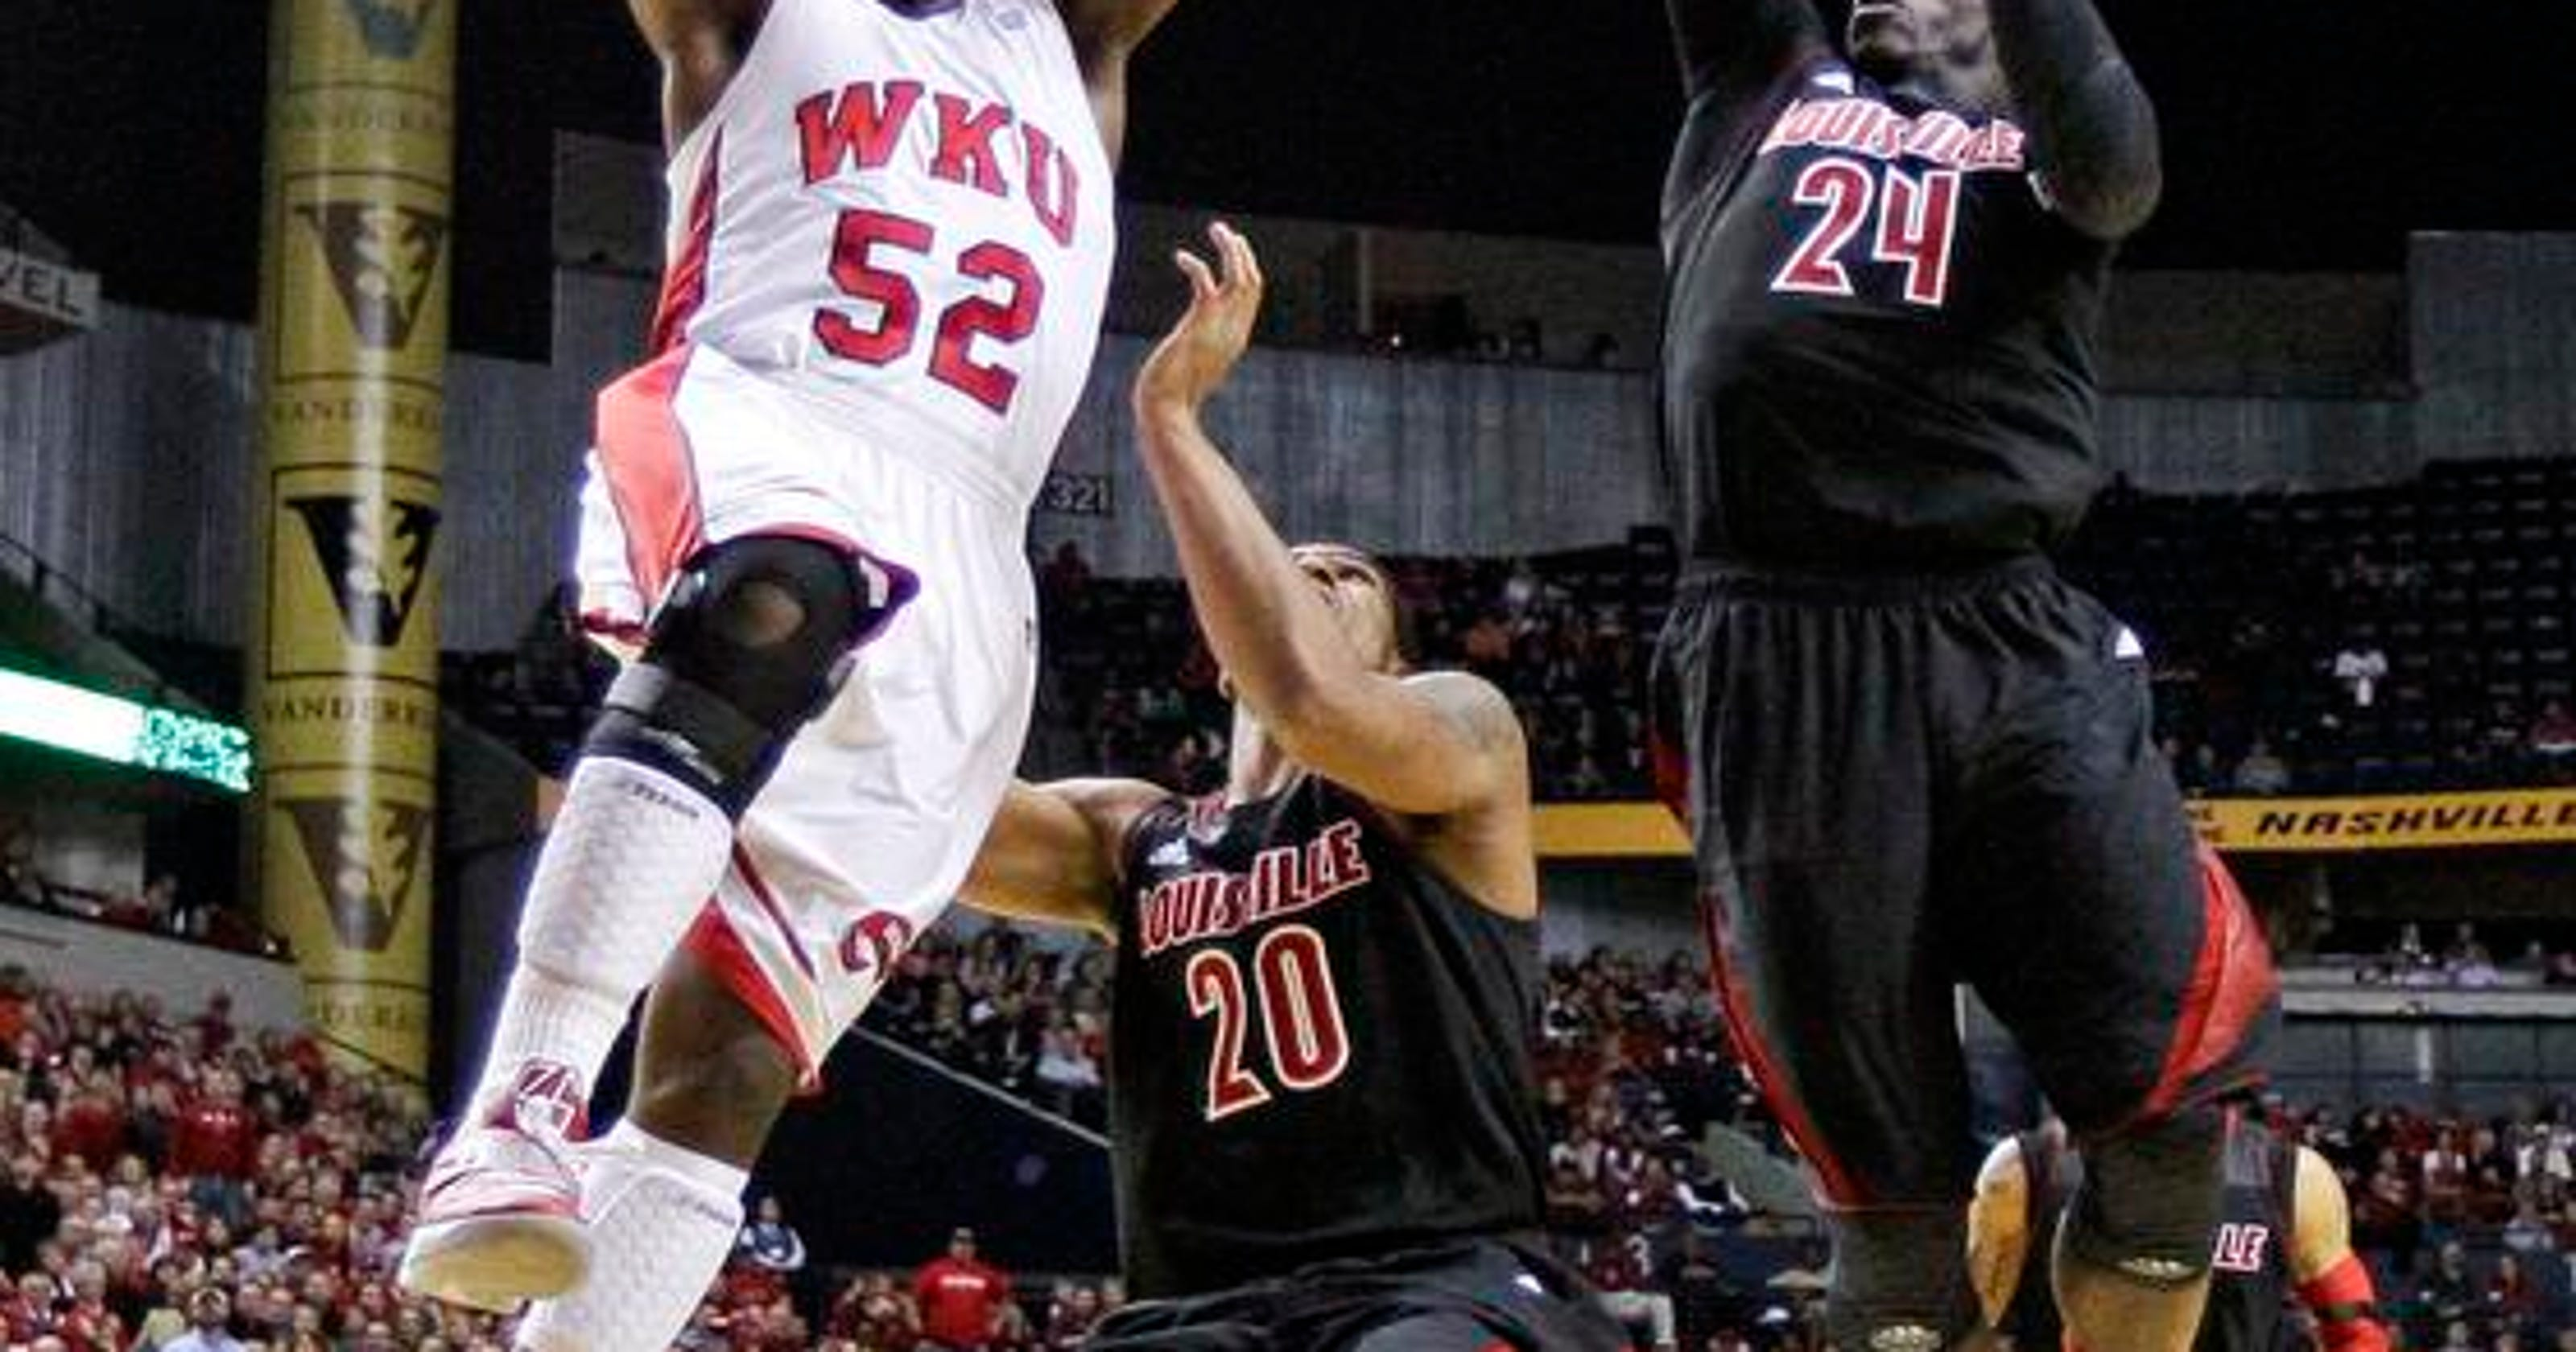 WKU basketball team picked to win another Sun Belt